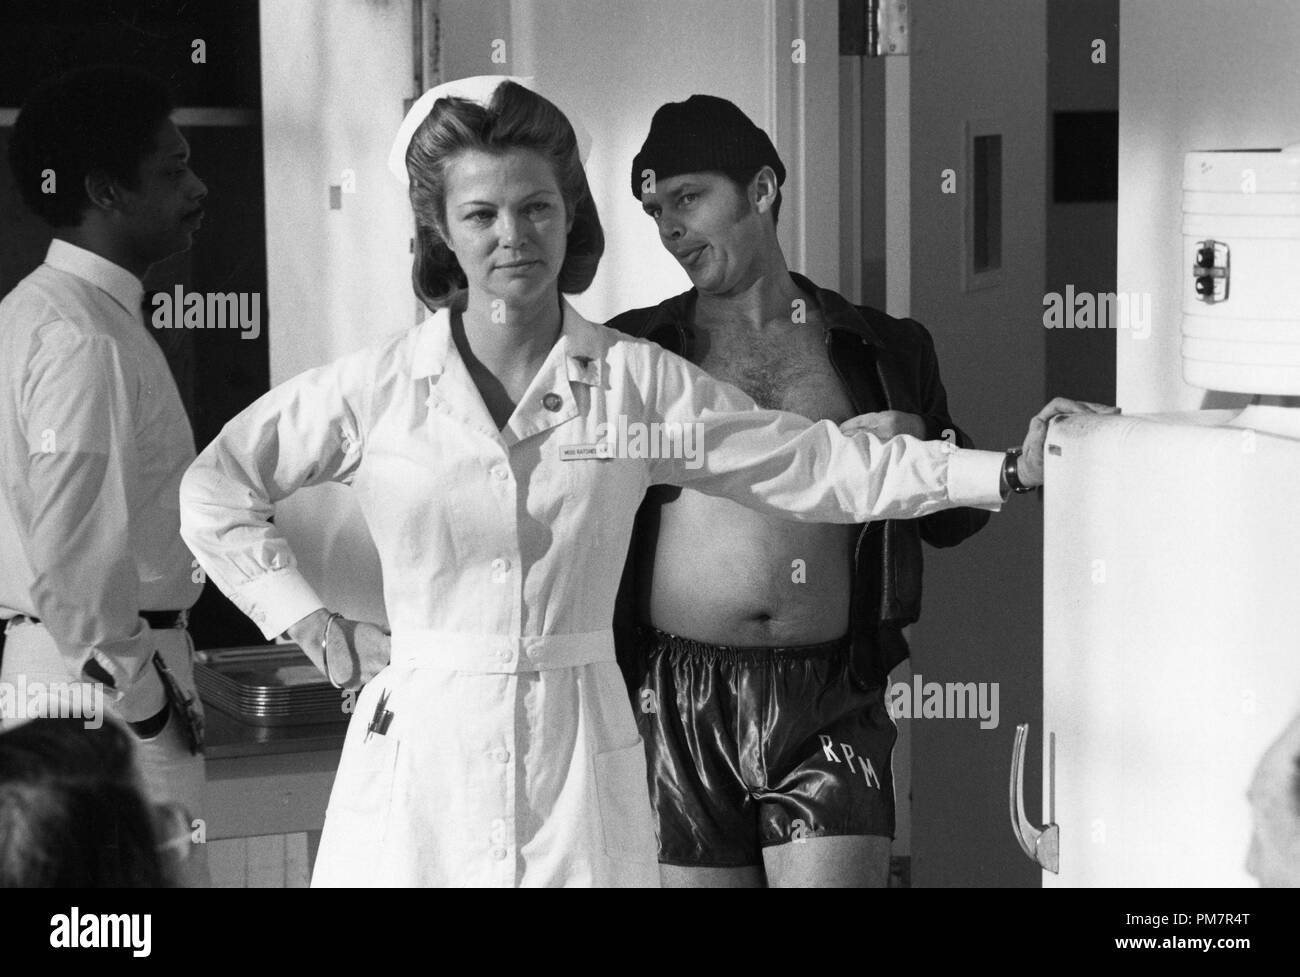 Studio Publicity Still: 'One Flew Over the Cuckoo's Nest'  Louise Fletcher, Jack Nicholson  1975 United Artists      File Reference # 31386_1140THA - Stock Image